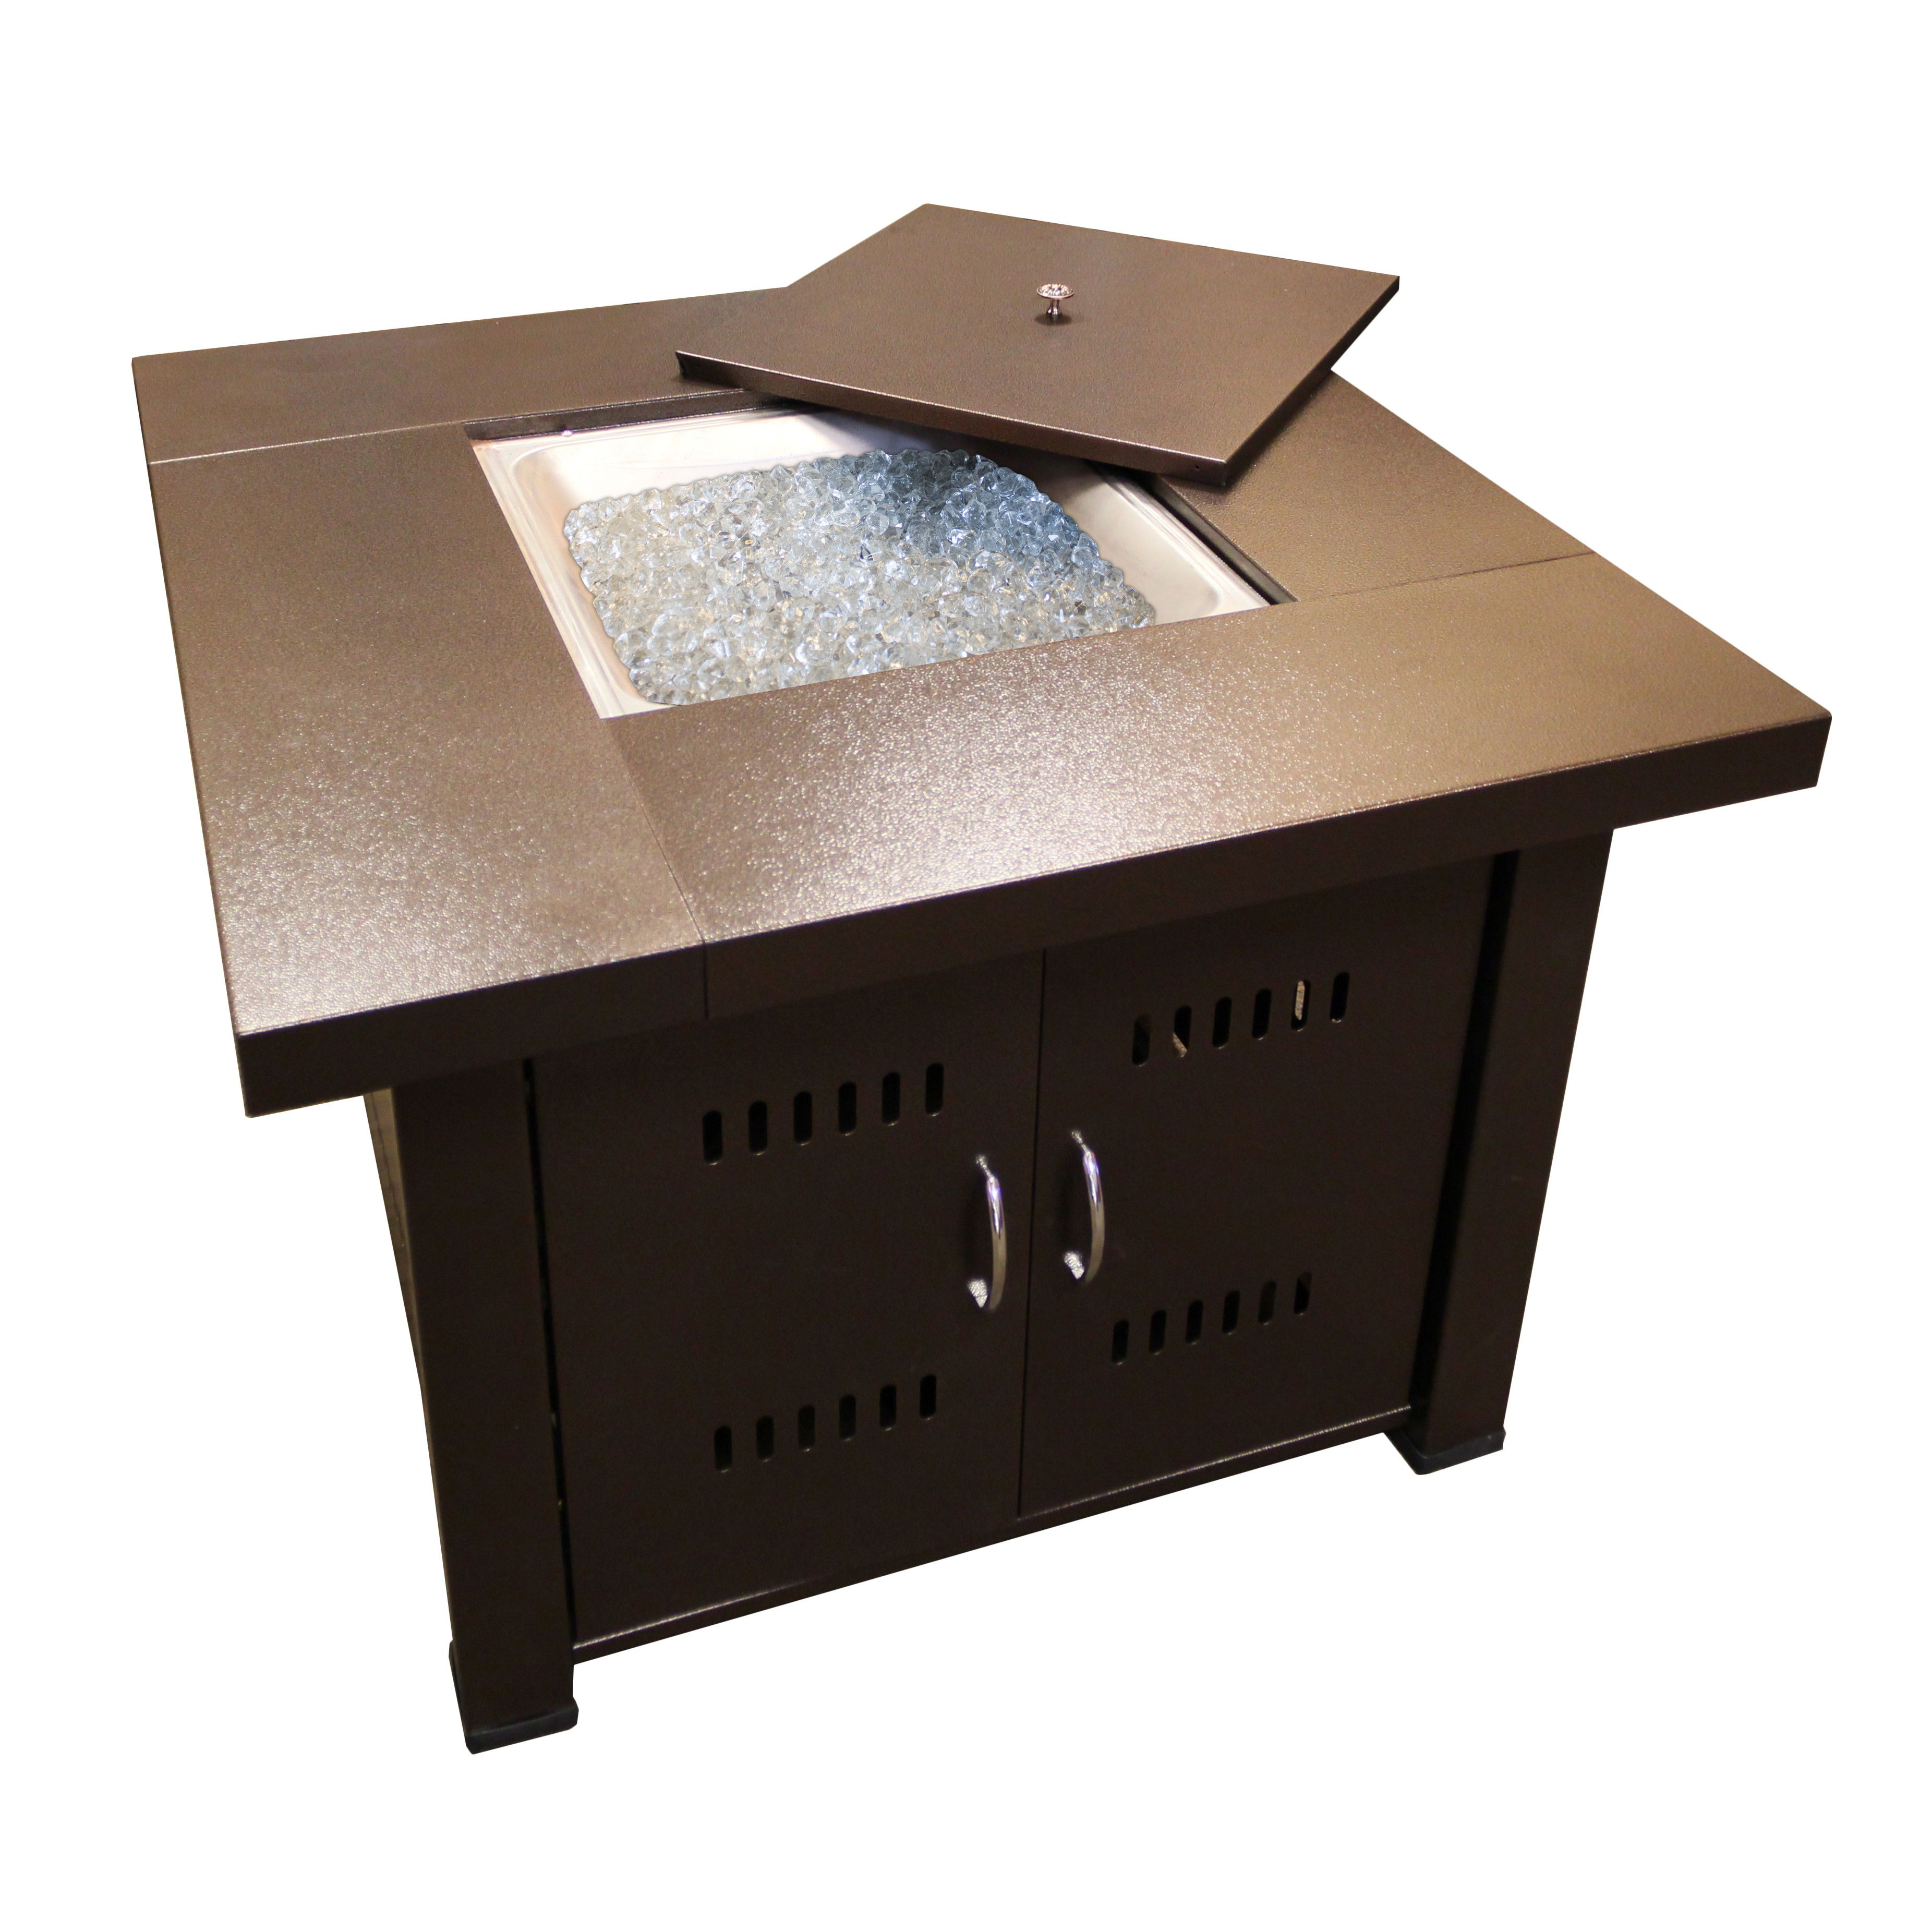 "Wayfair Hiland Gas Fire Pit: 38"" square, on clearance for $240 